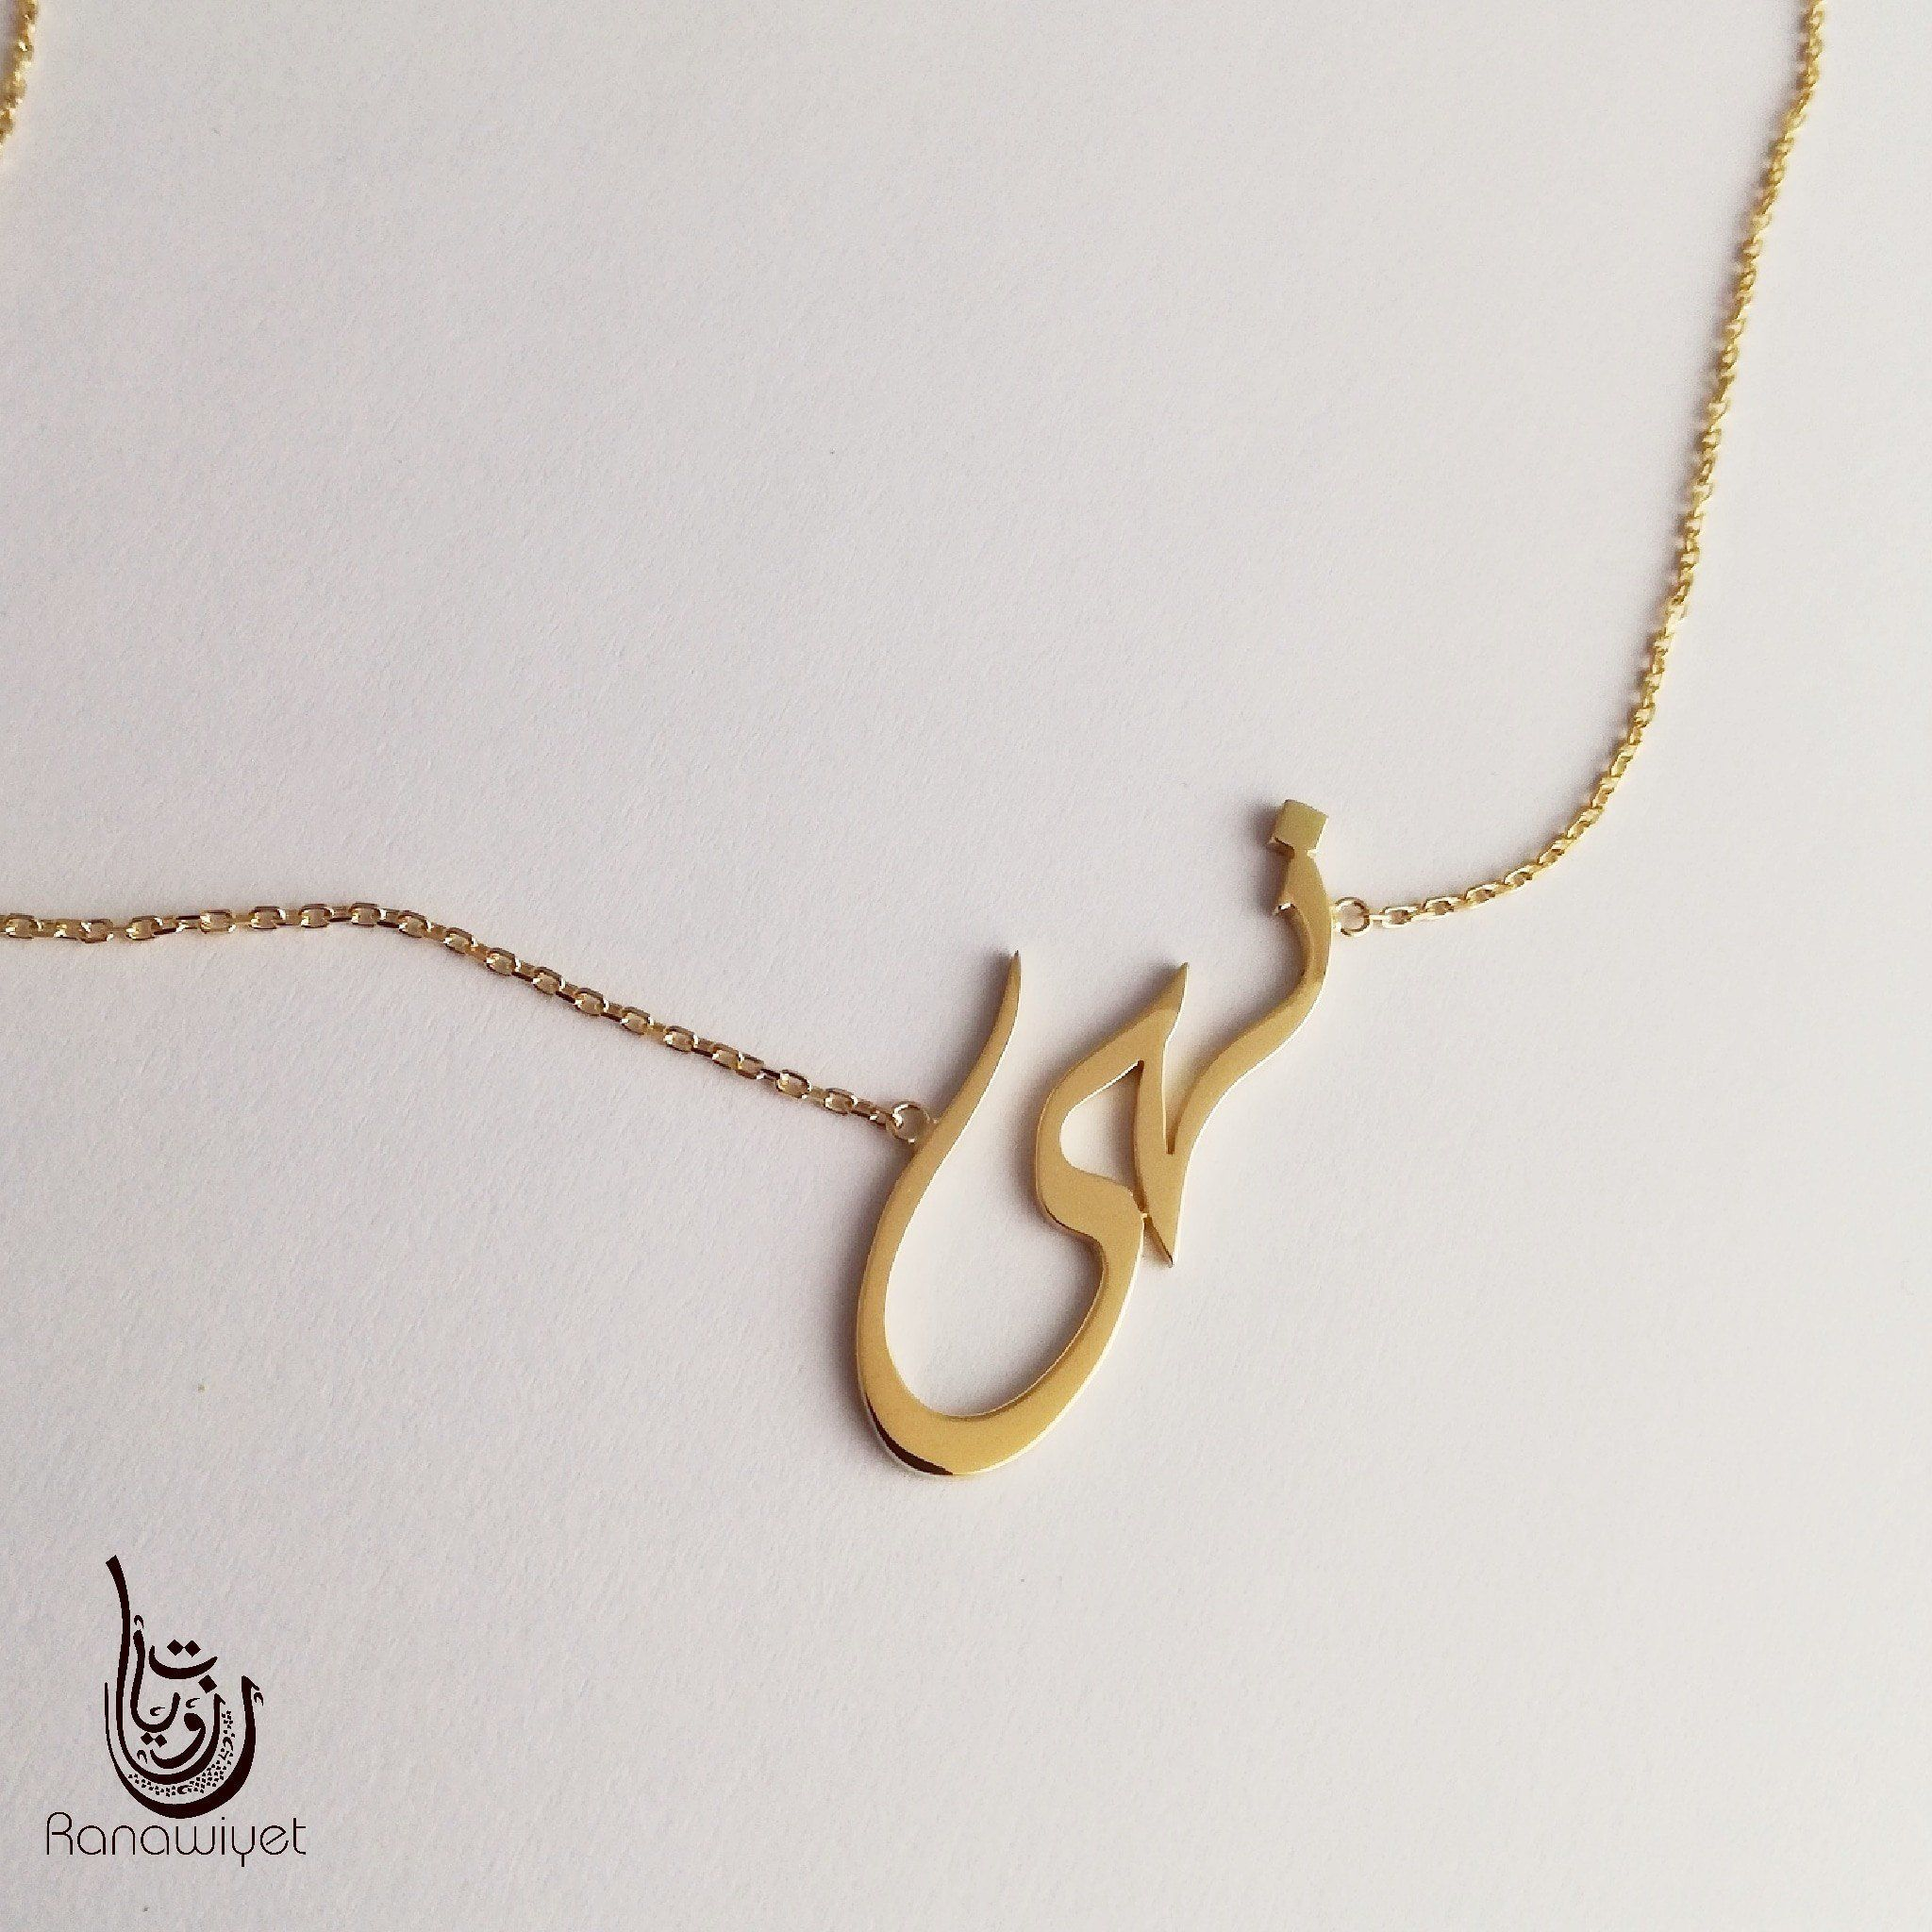 a05c6b9d2 #Noha name necklace in solid 18k gold. #ranawiyet #namenecklace #نهى  #arabicnamenecklace #arabiccallography #personalised #jewelry #giftsforher  ...